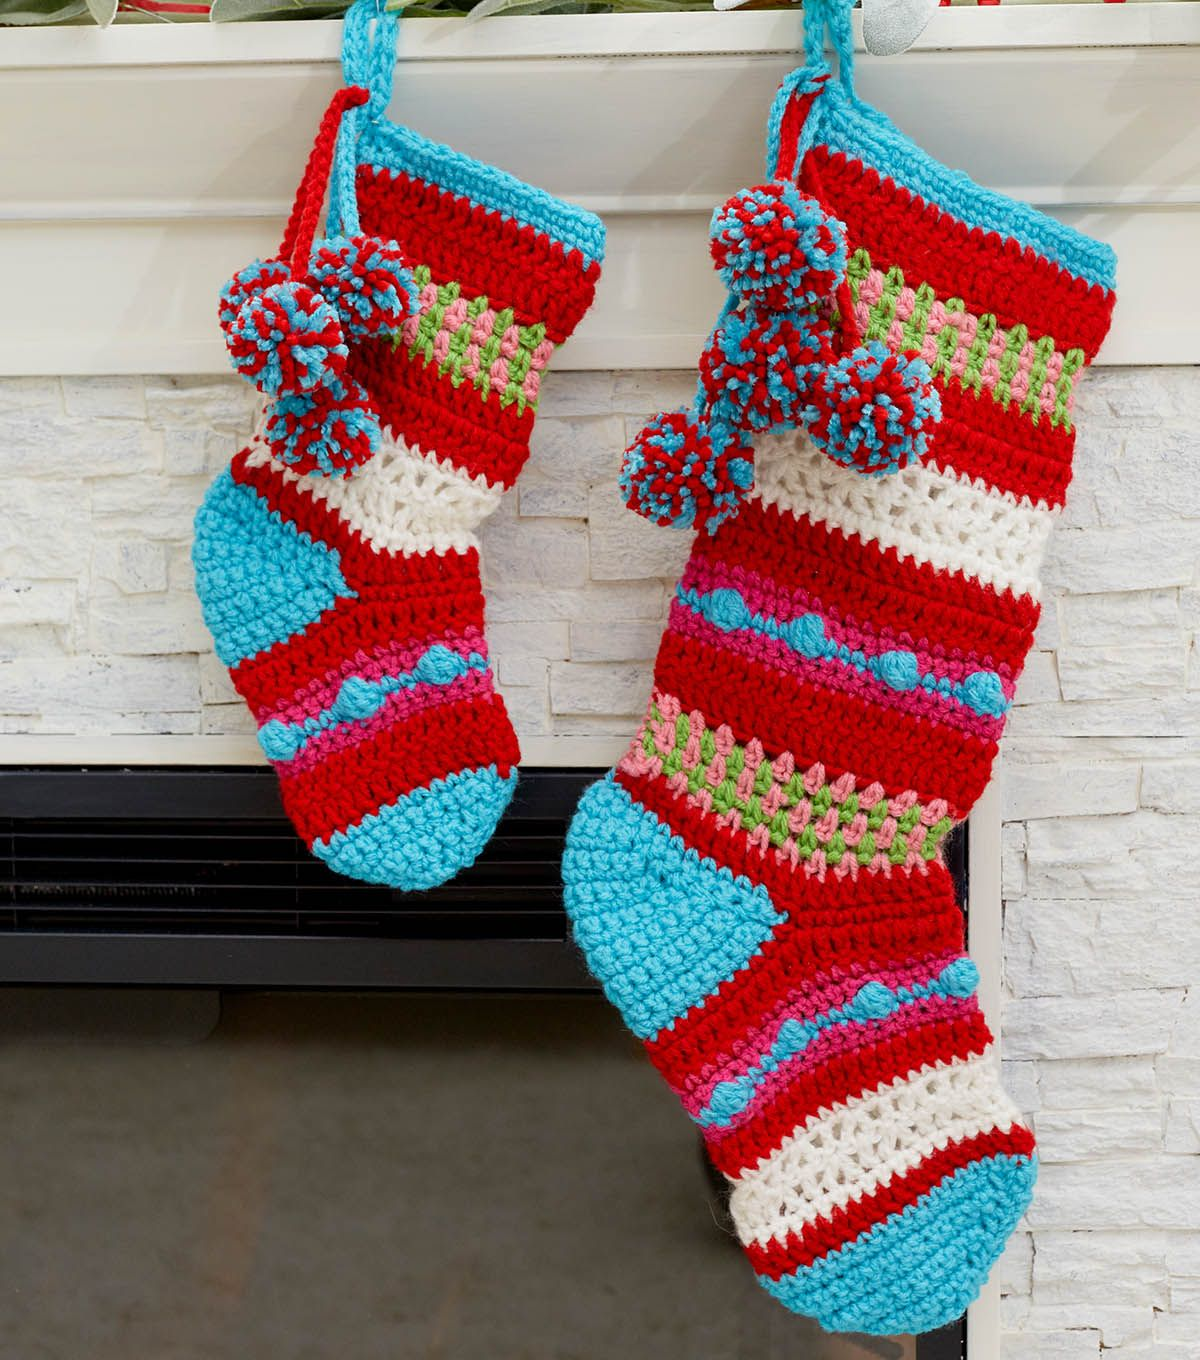 How To Crochet Pompoms And Stripes Holiday Stockings | Christmas ...